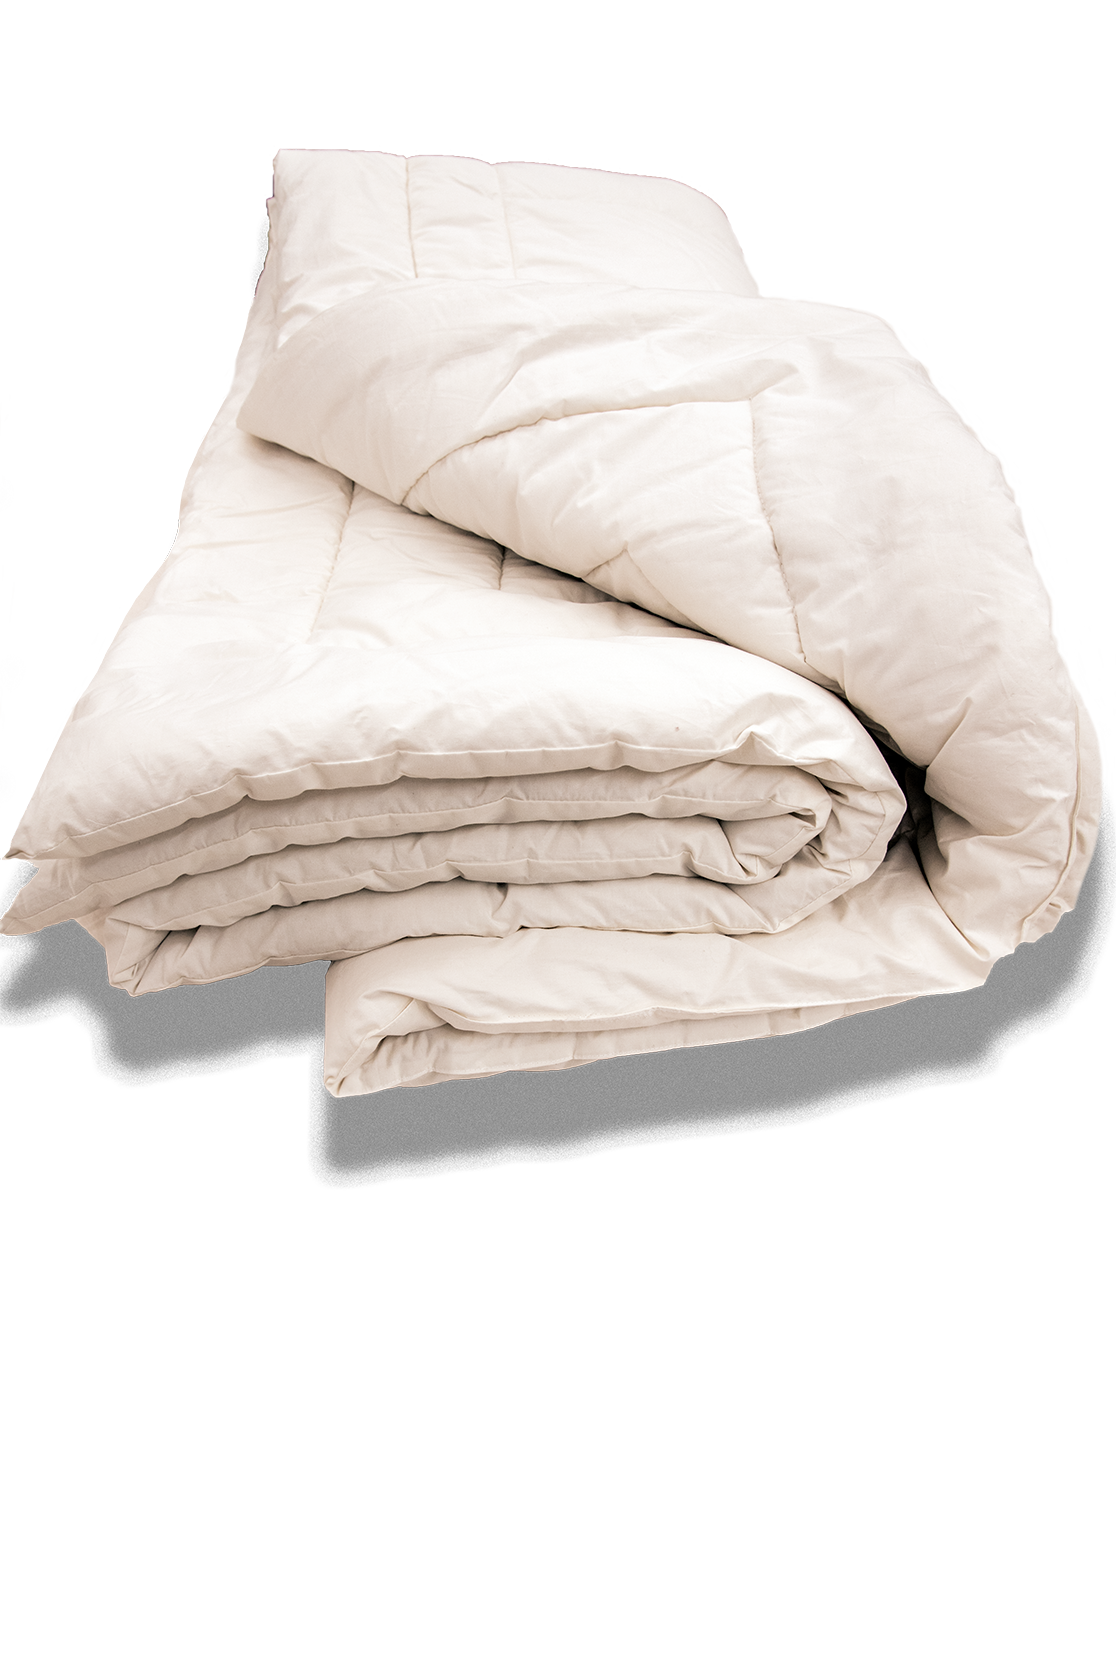 Organic cotton comforter breathes naturally as you sleep.